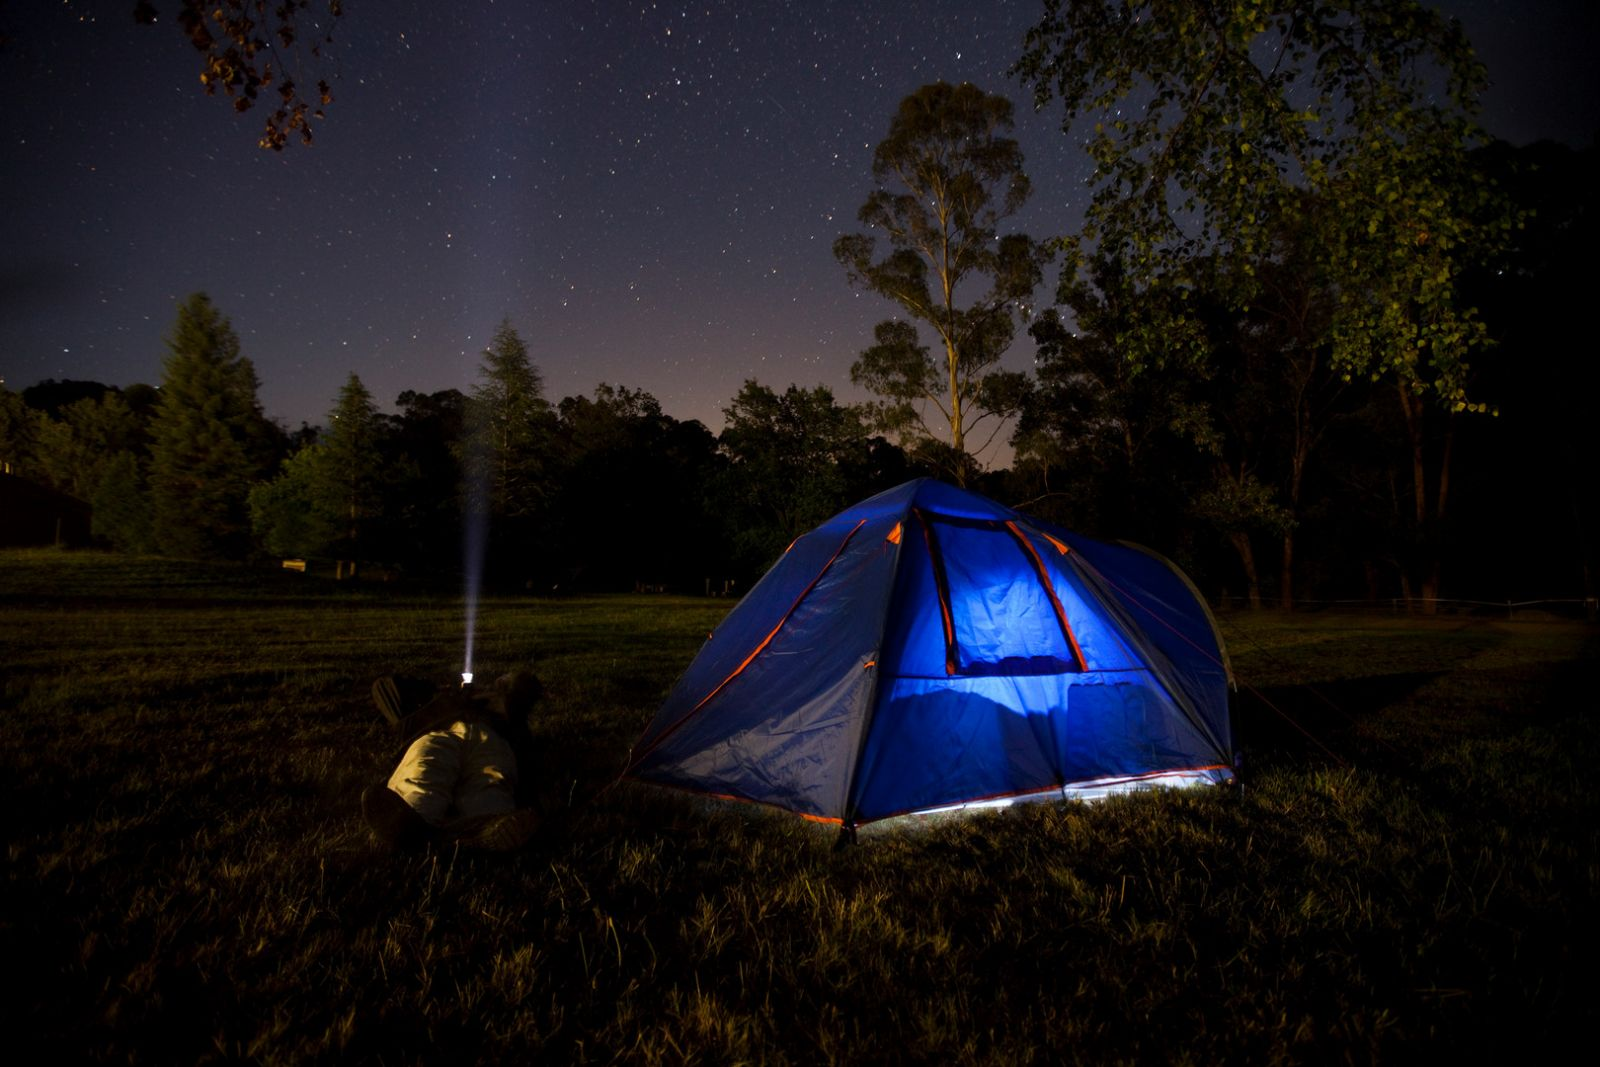 Best Led Rechargeable Lanterns Reviews 😄 Compare Now